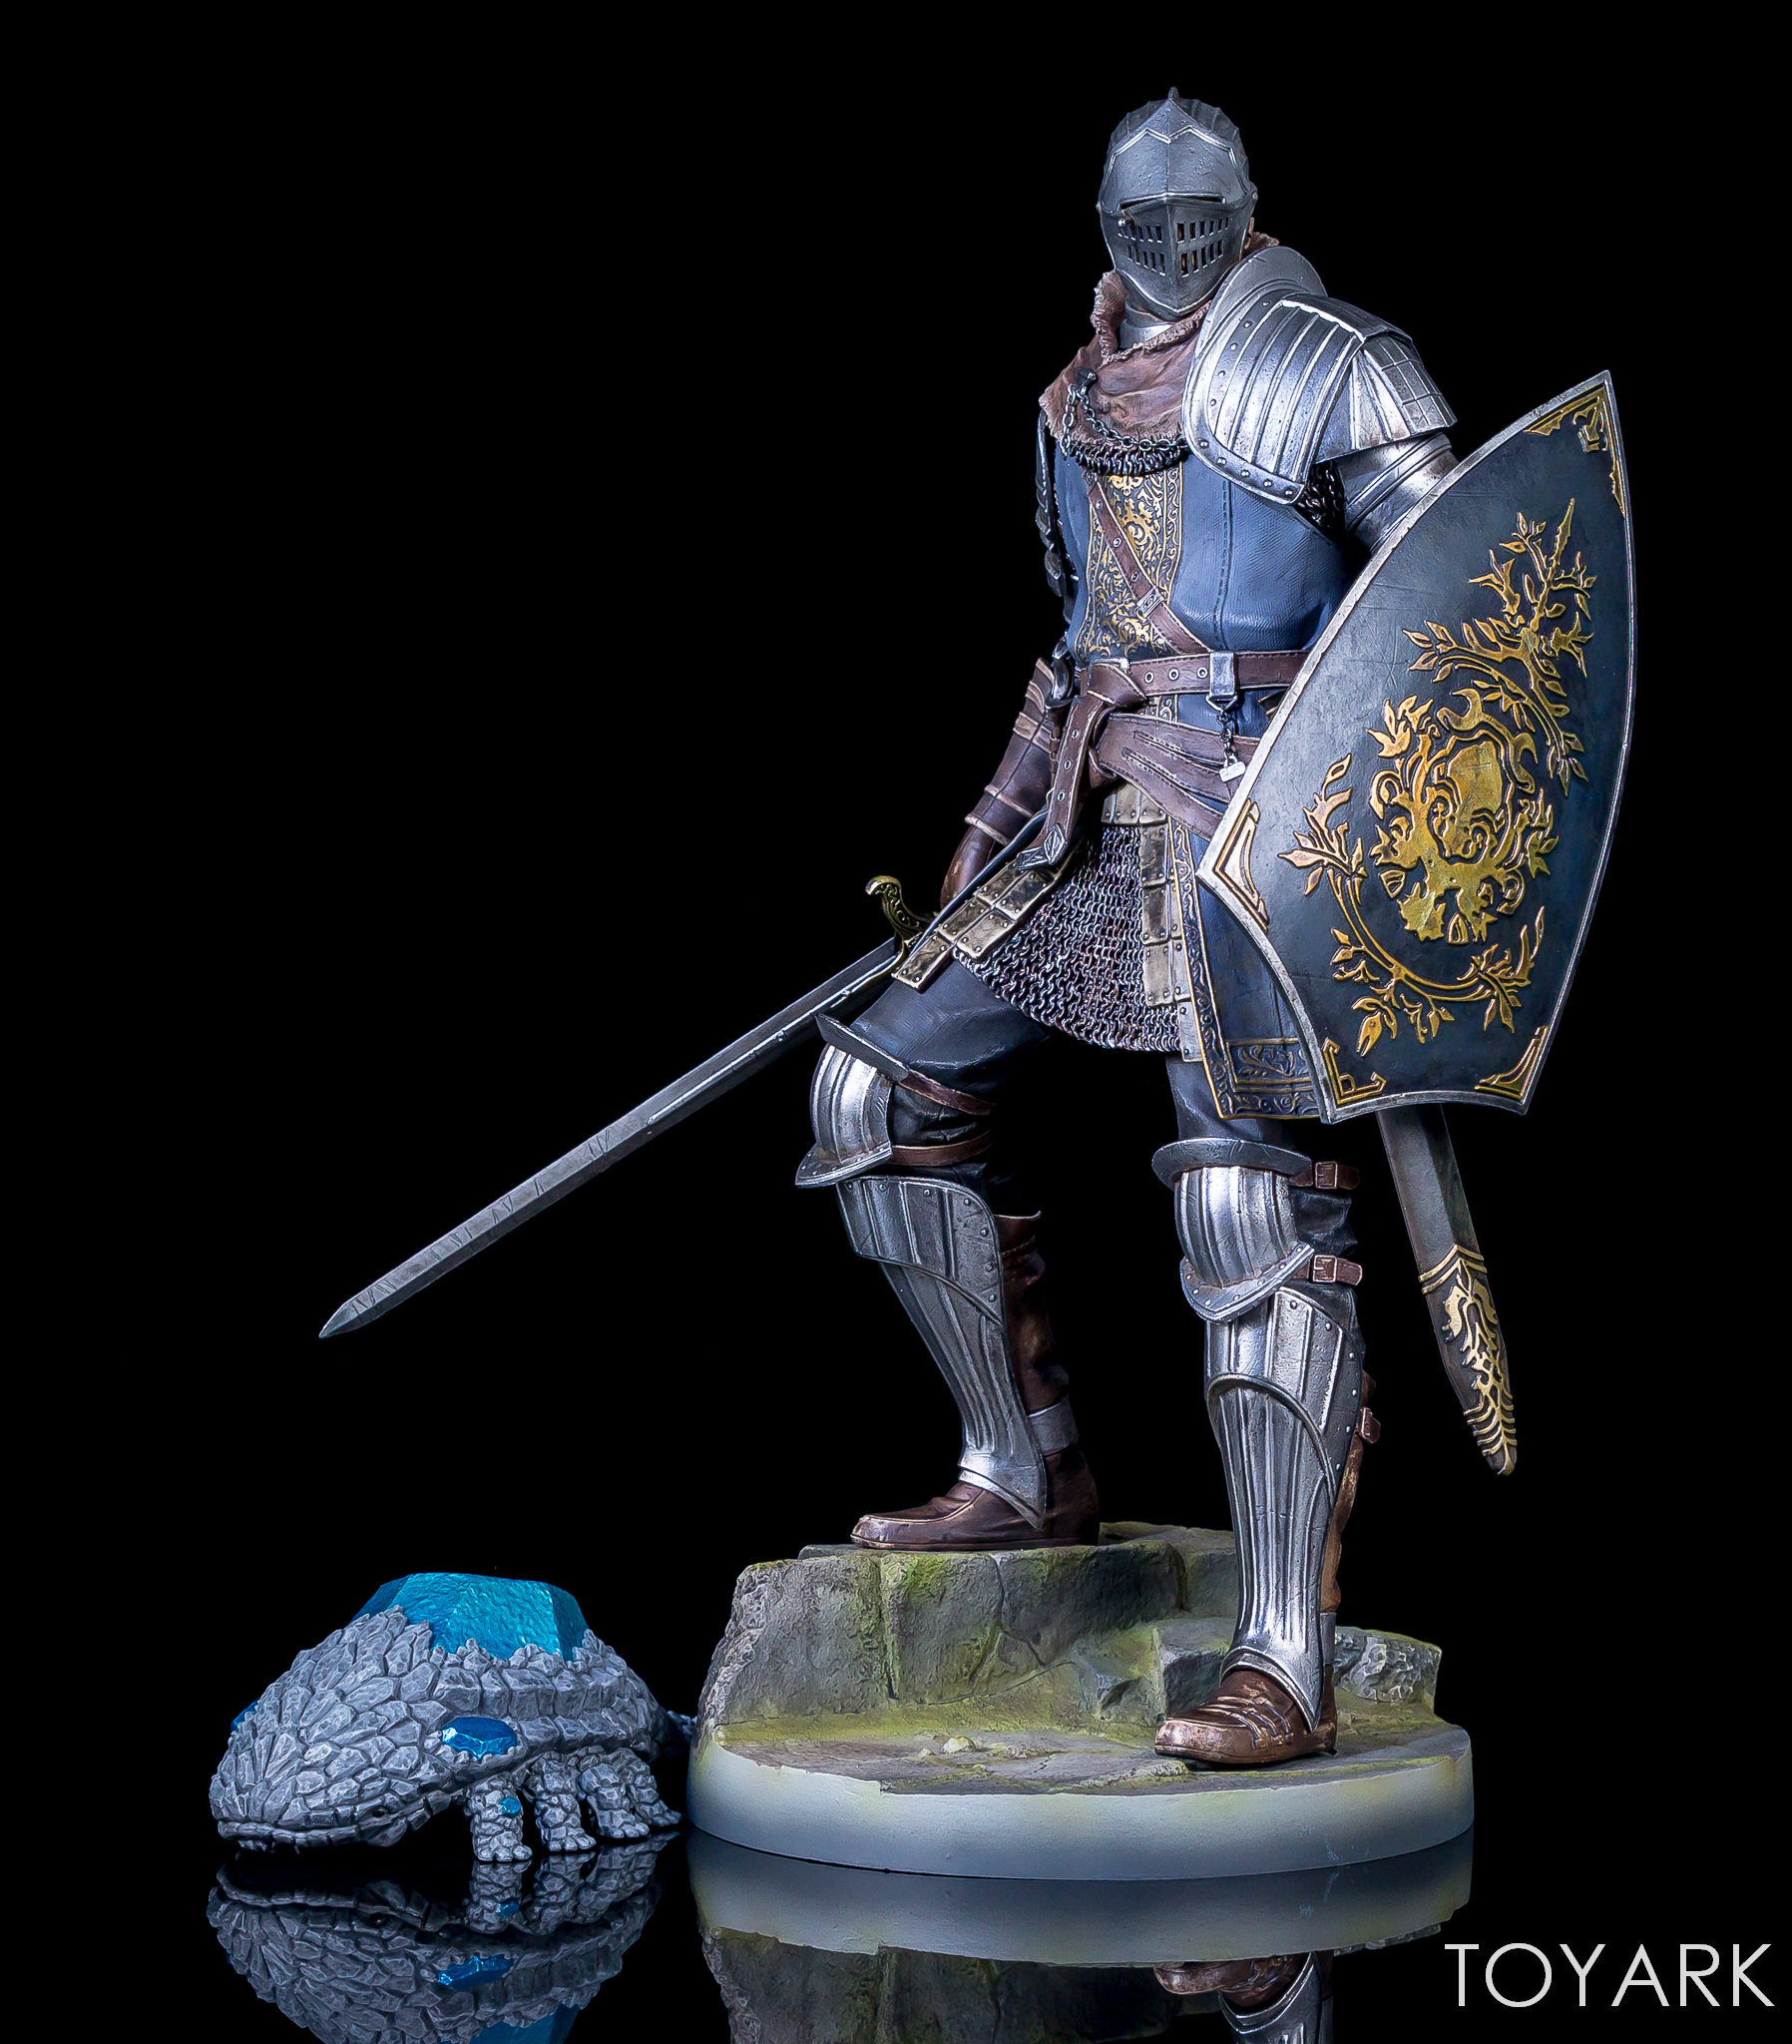 http://news.toyark.com/wp-content/uploads/sites/4/2018/02/Gecco-Dark-Souls-Knight-of-Astora-Oscar-035.jpg